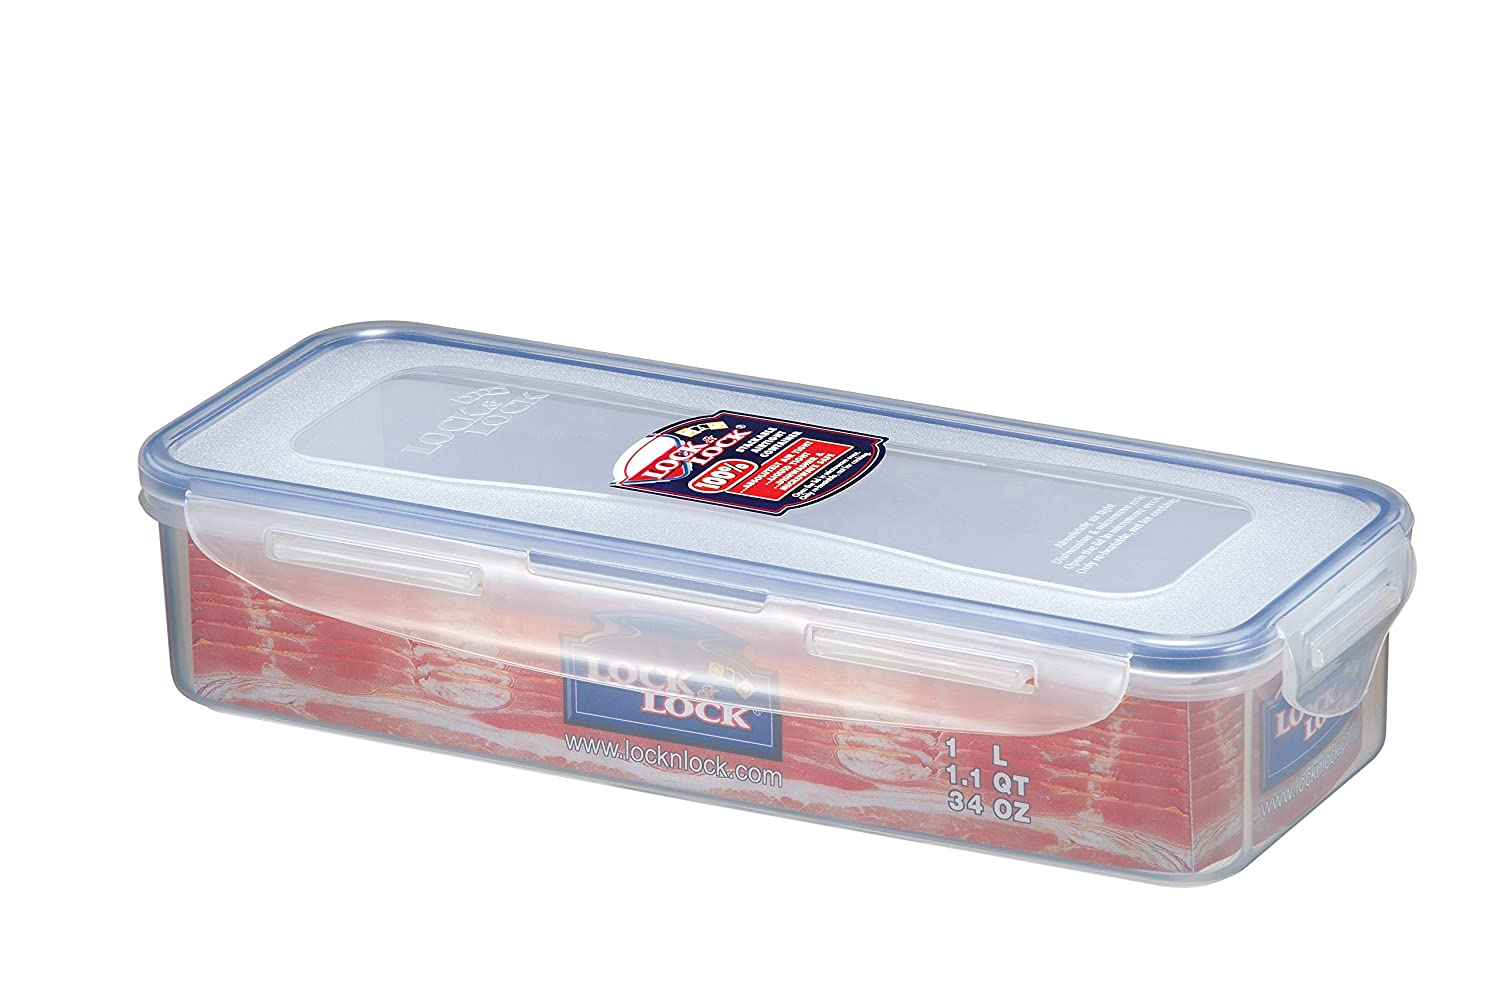 Lock & Lock HPL842 Multi-Use Food-Storage Box 1.0 L with Drain Grate iSi Deutschland GmbH